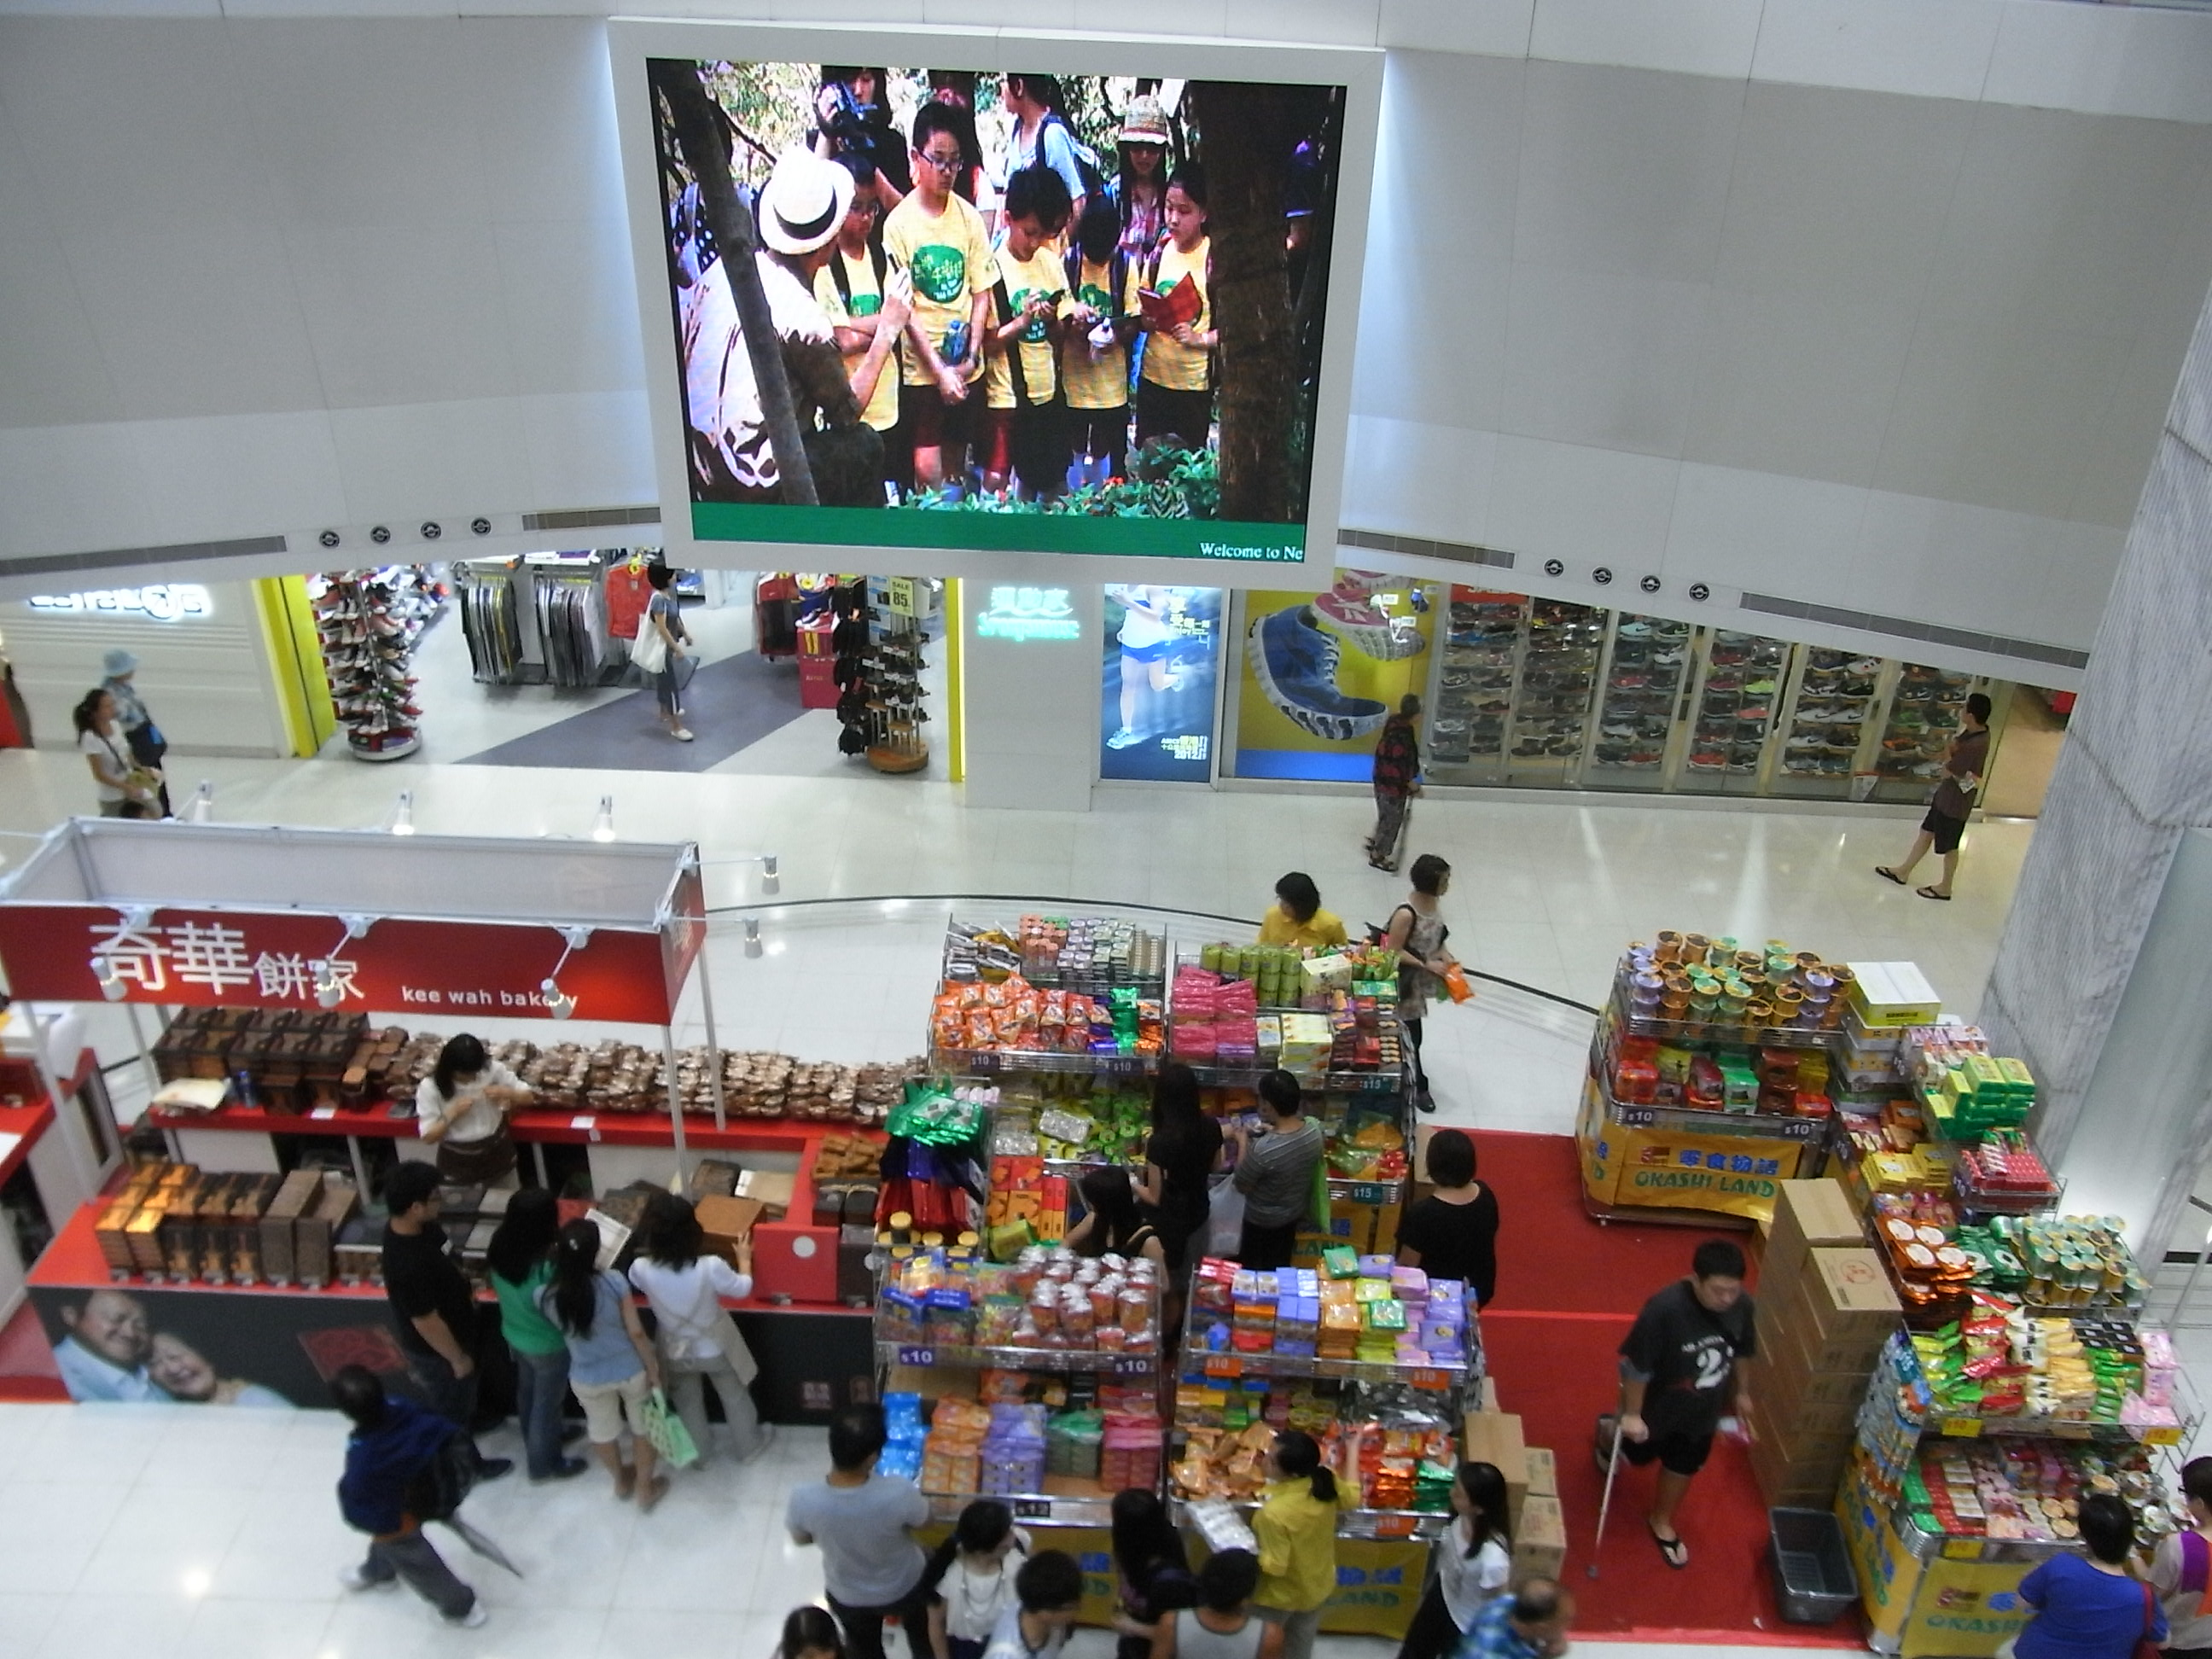 File:HK Chai Wan New Jade Gardens Shopping Arcade Interior Courtyard  Visitors Big TV Set